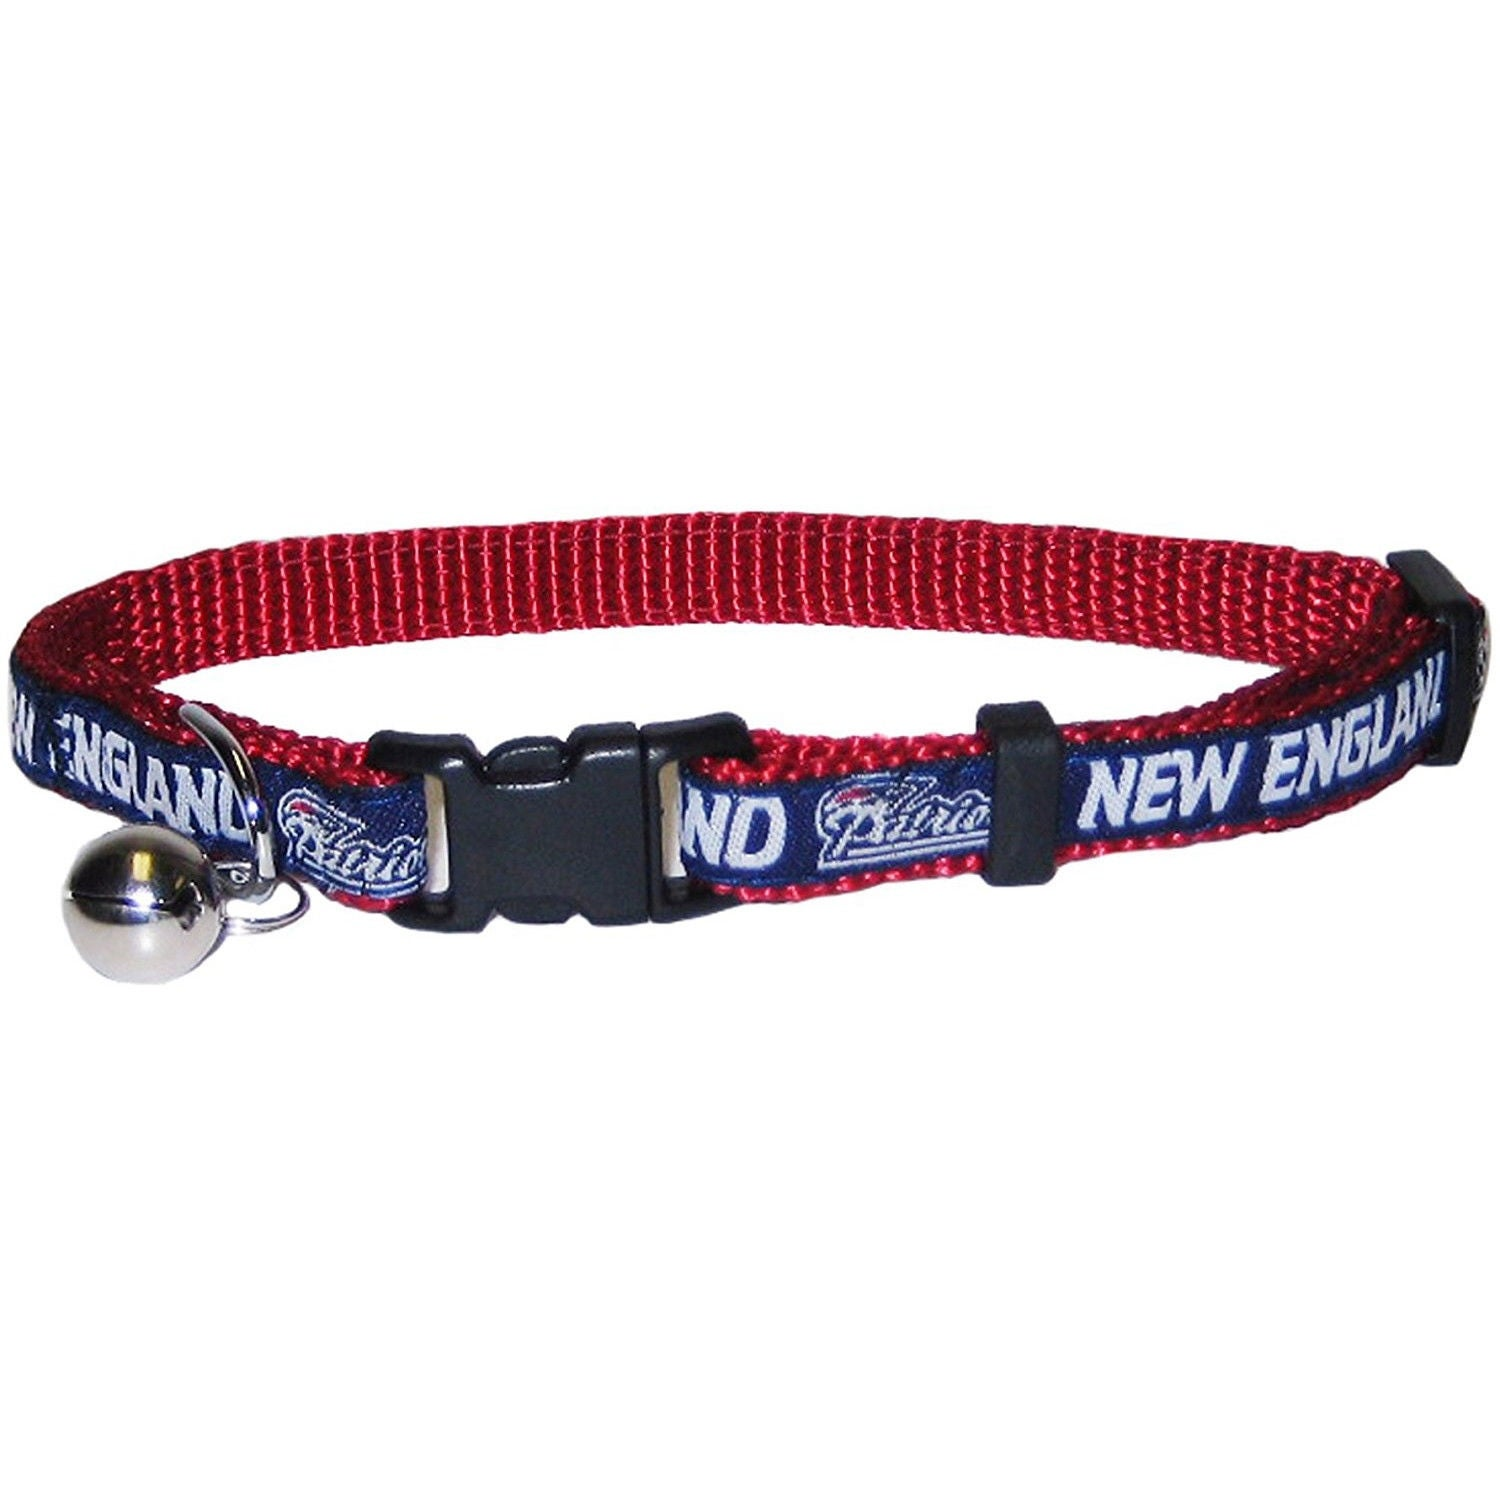 Shop NFL New England Patriots Cat Collar - On Sale - Free Shipping ... 0278c56d0